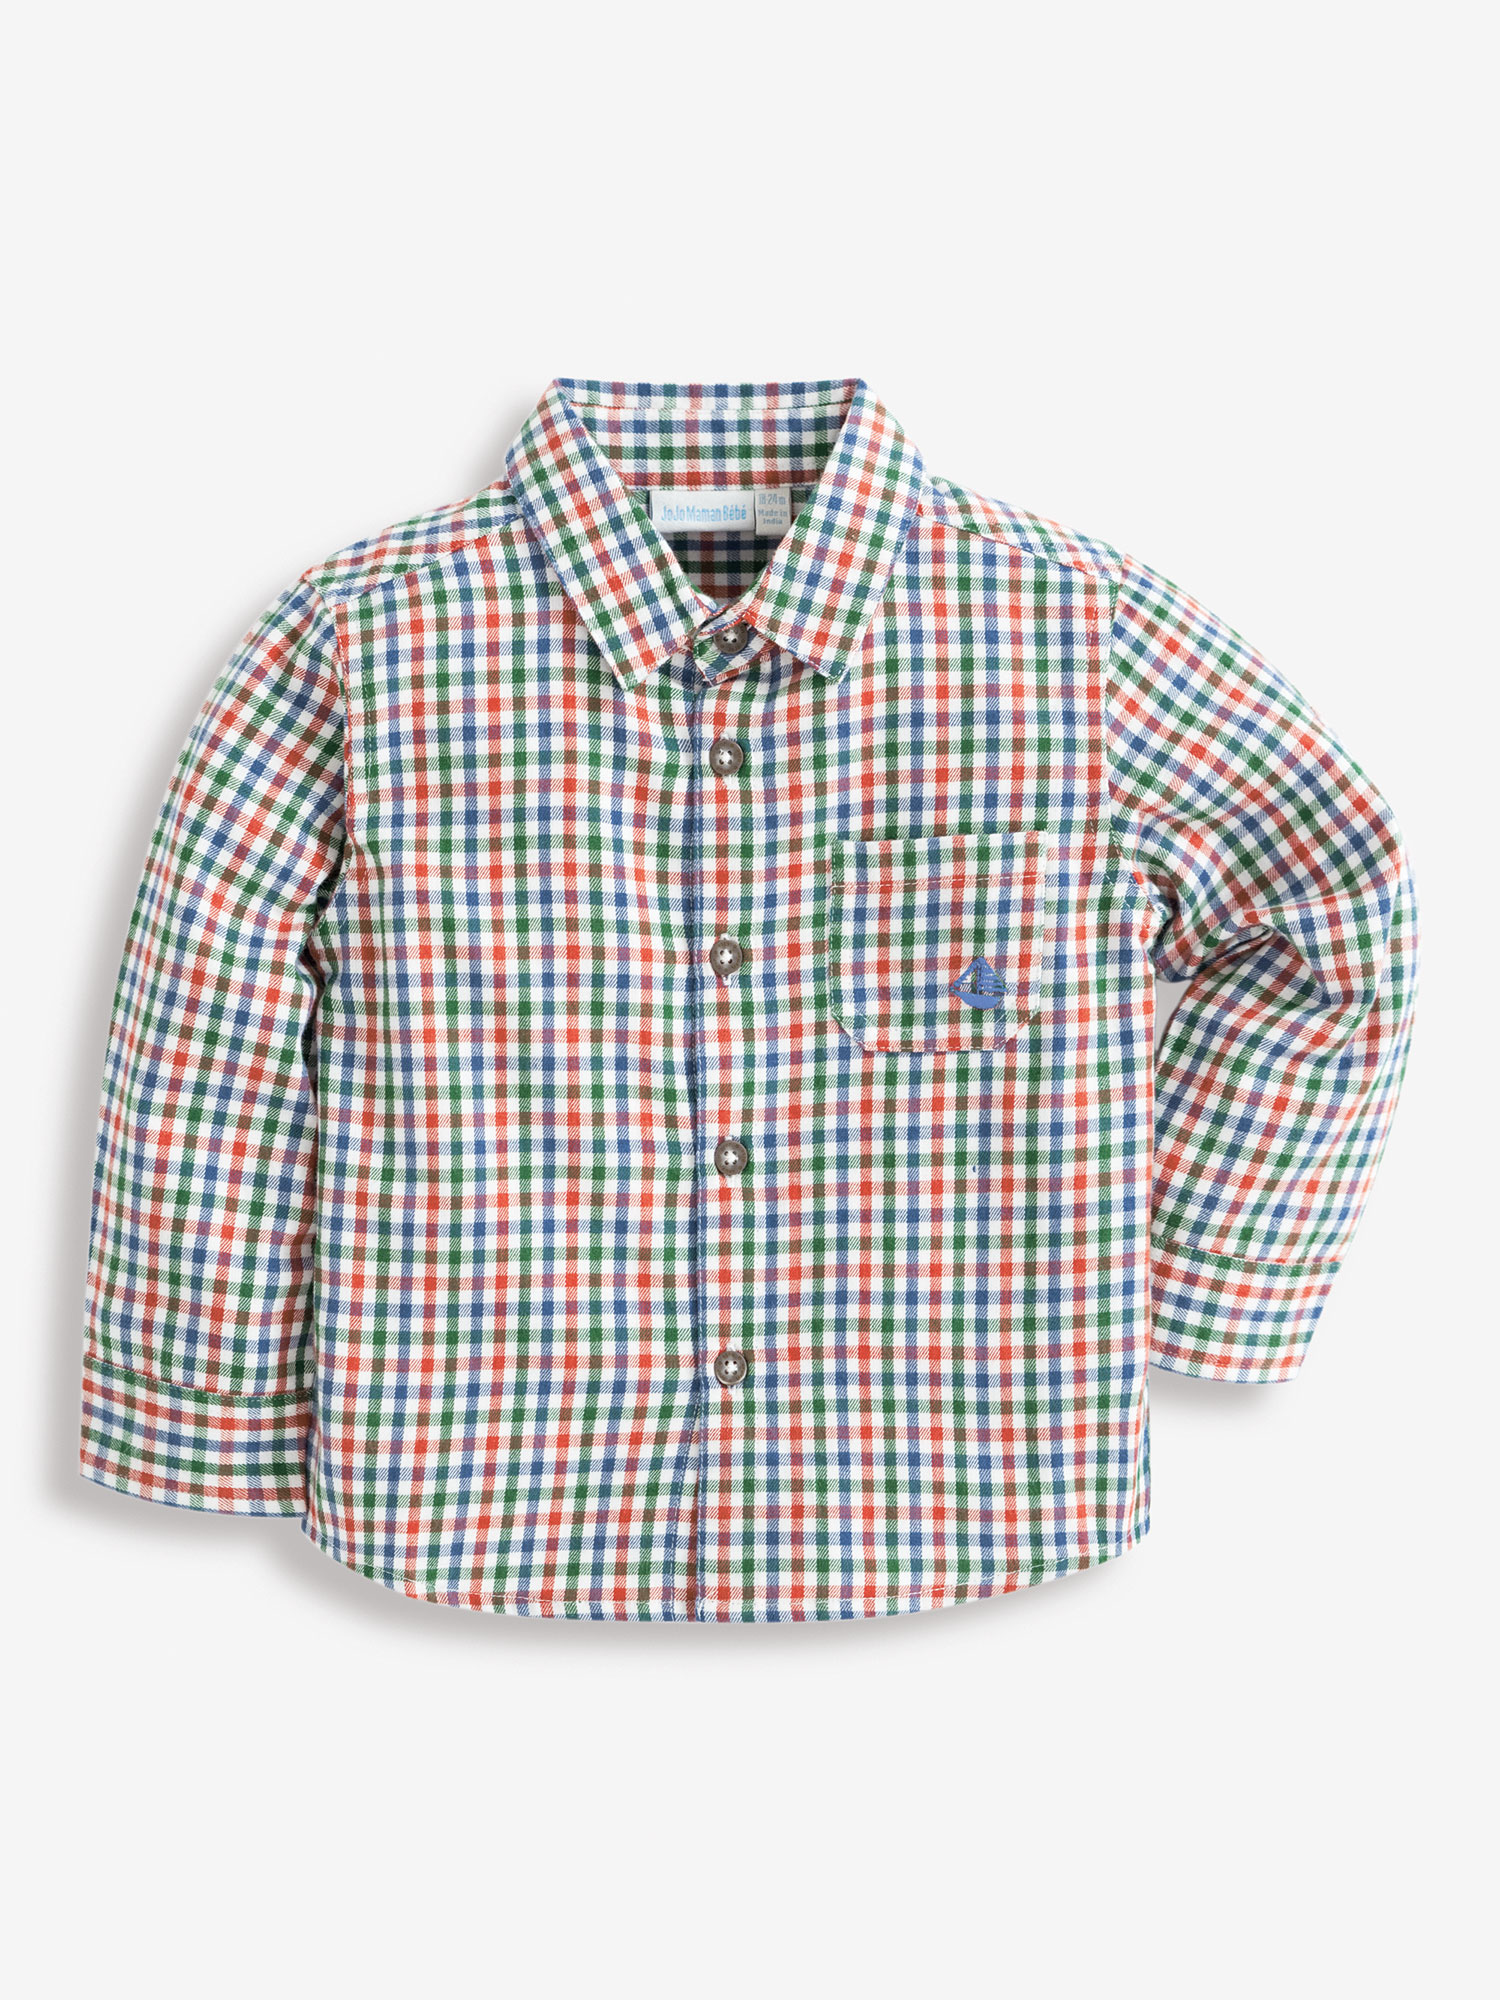 Boys' Green & Russet Check Shirt